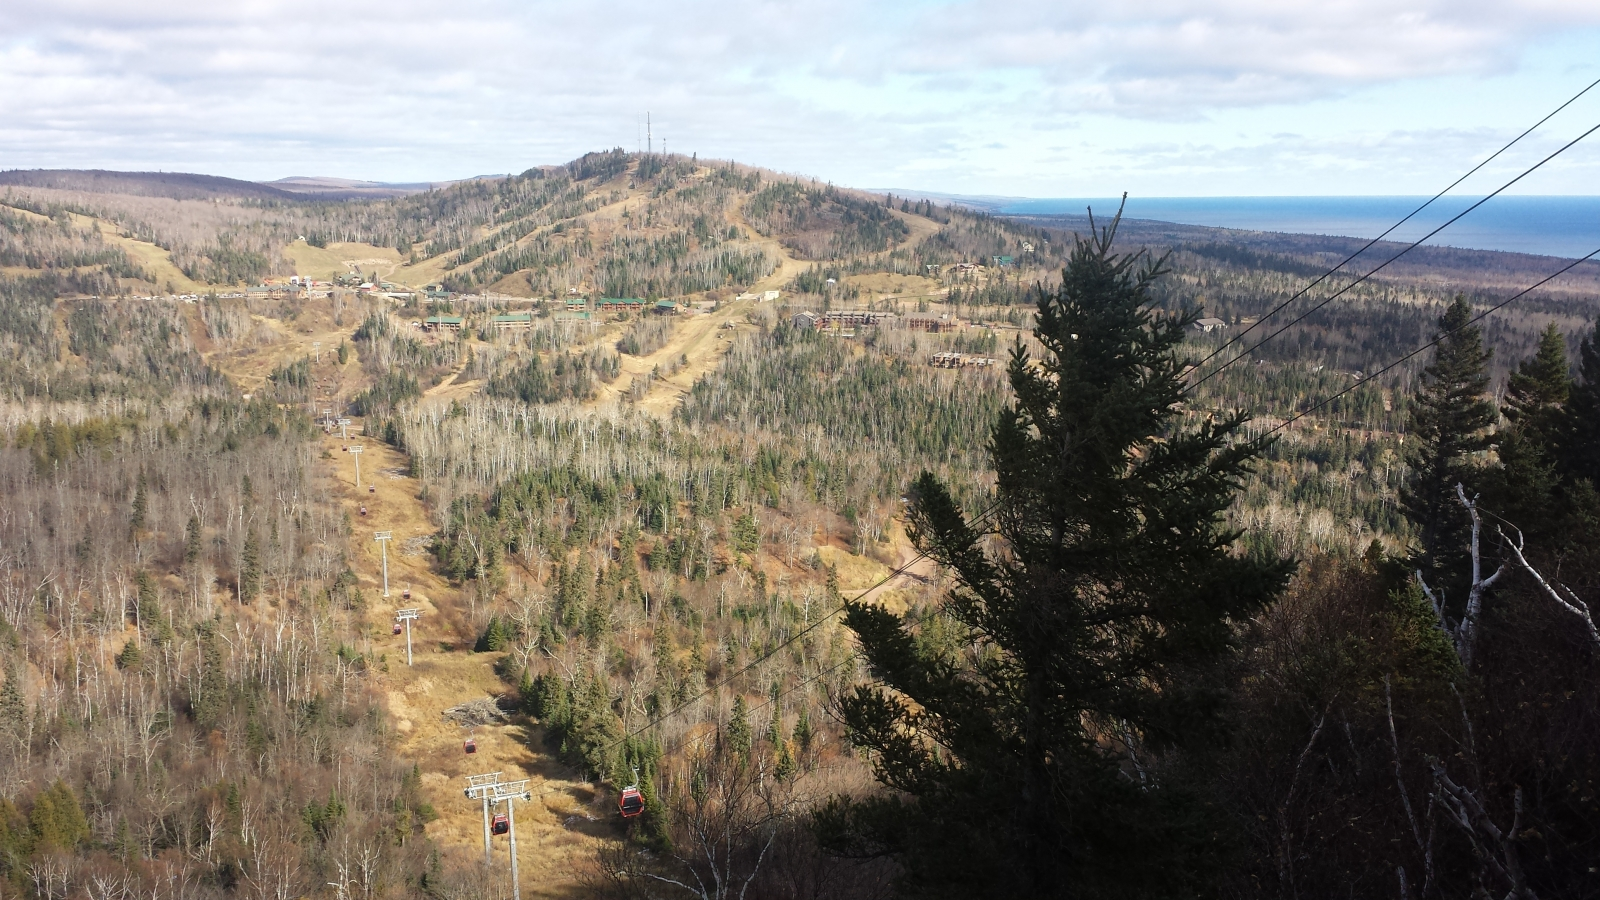 Even without peak fall colors, the ride on the Summit Express Gondola in Lutsen is beautiful. Photo by Lianna Matt.